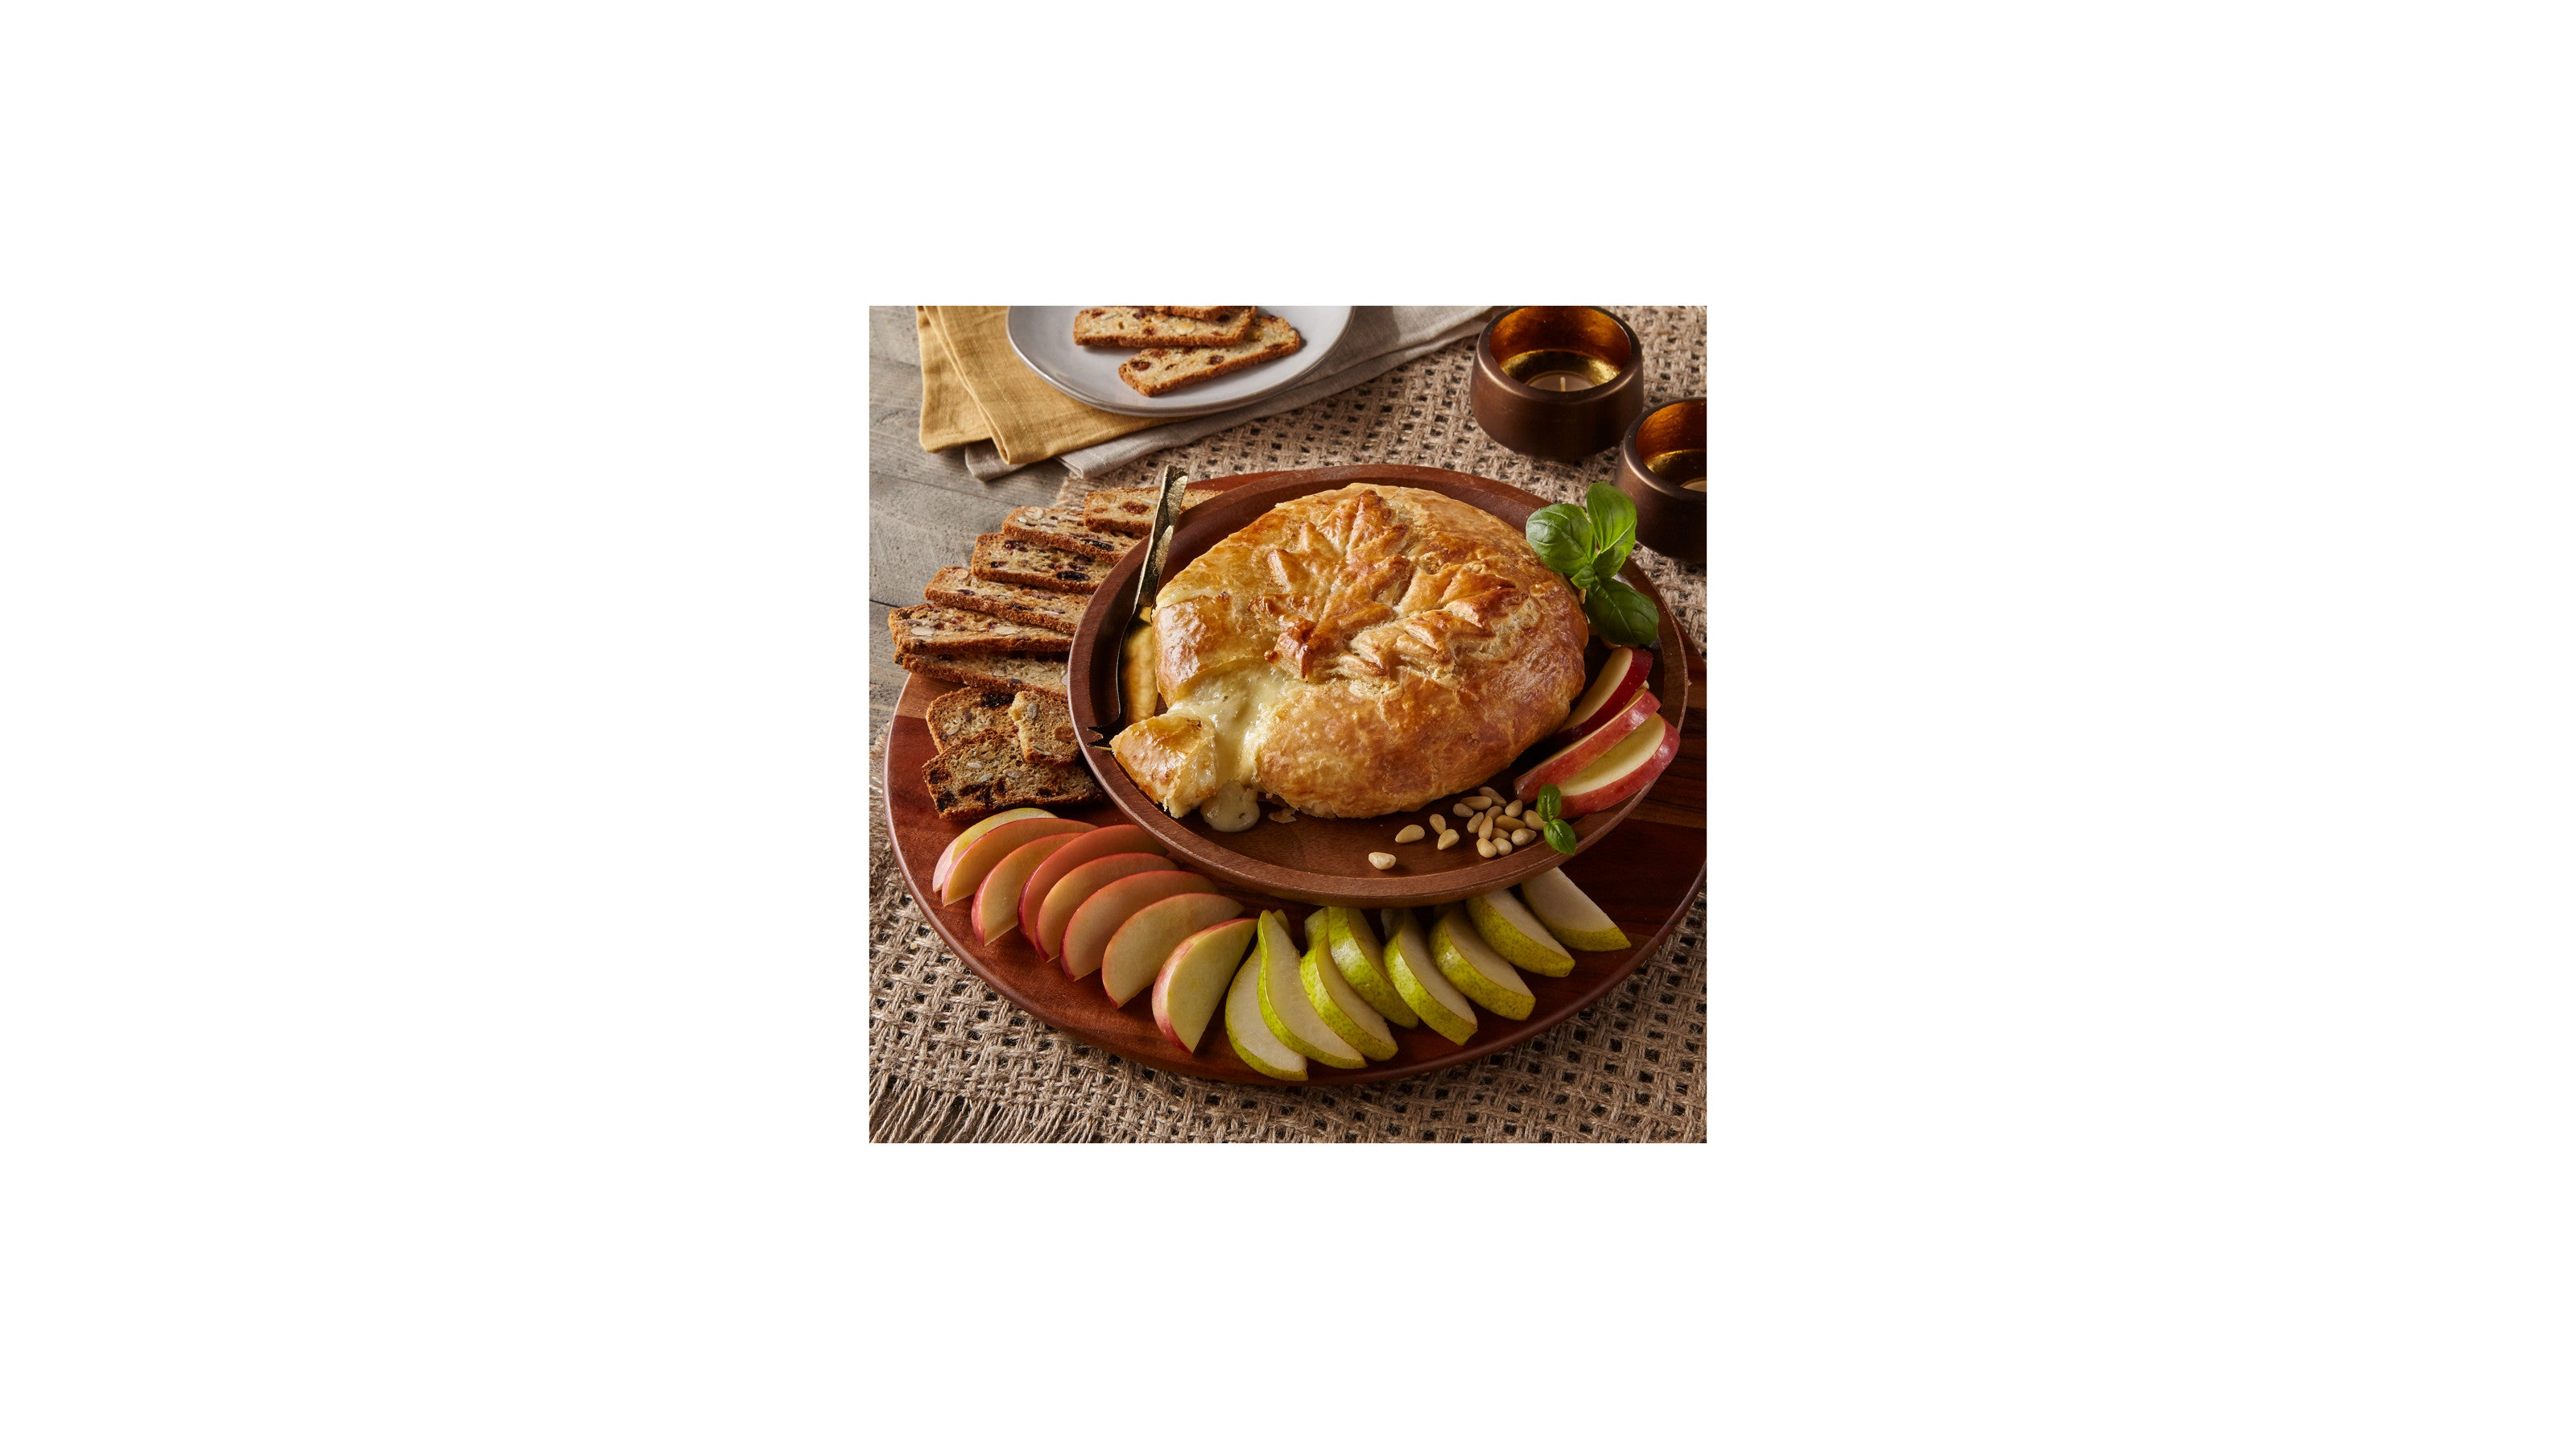 Baked Brie Garlic, Basil and Pine Nut